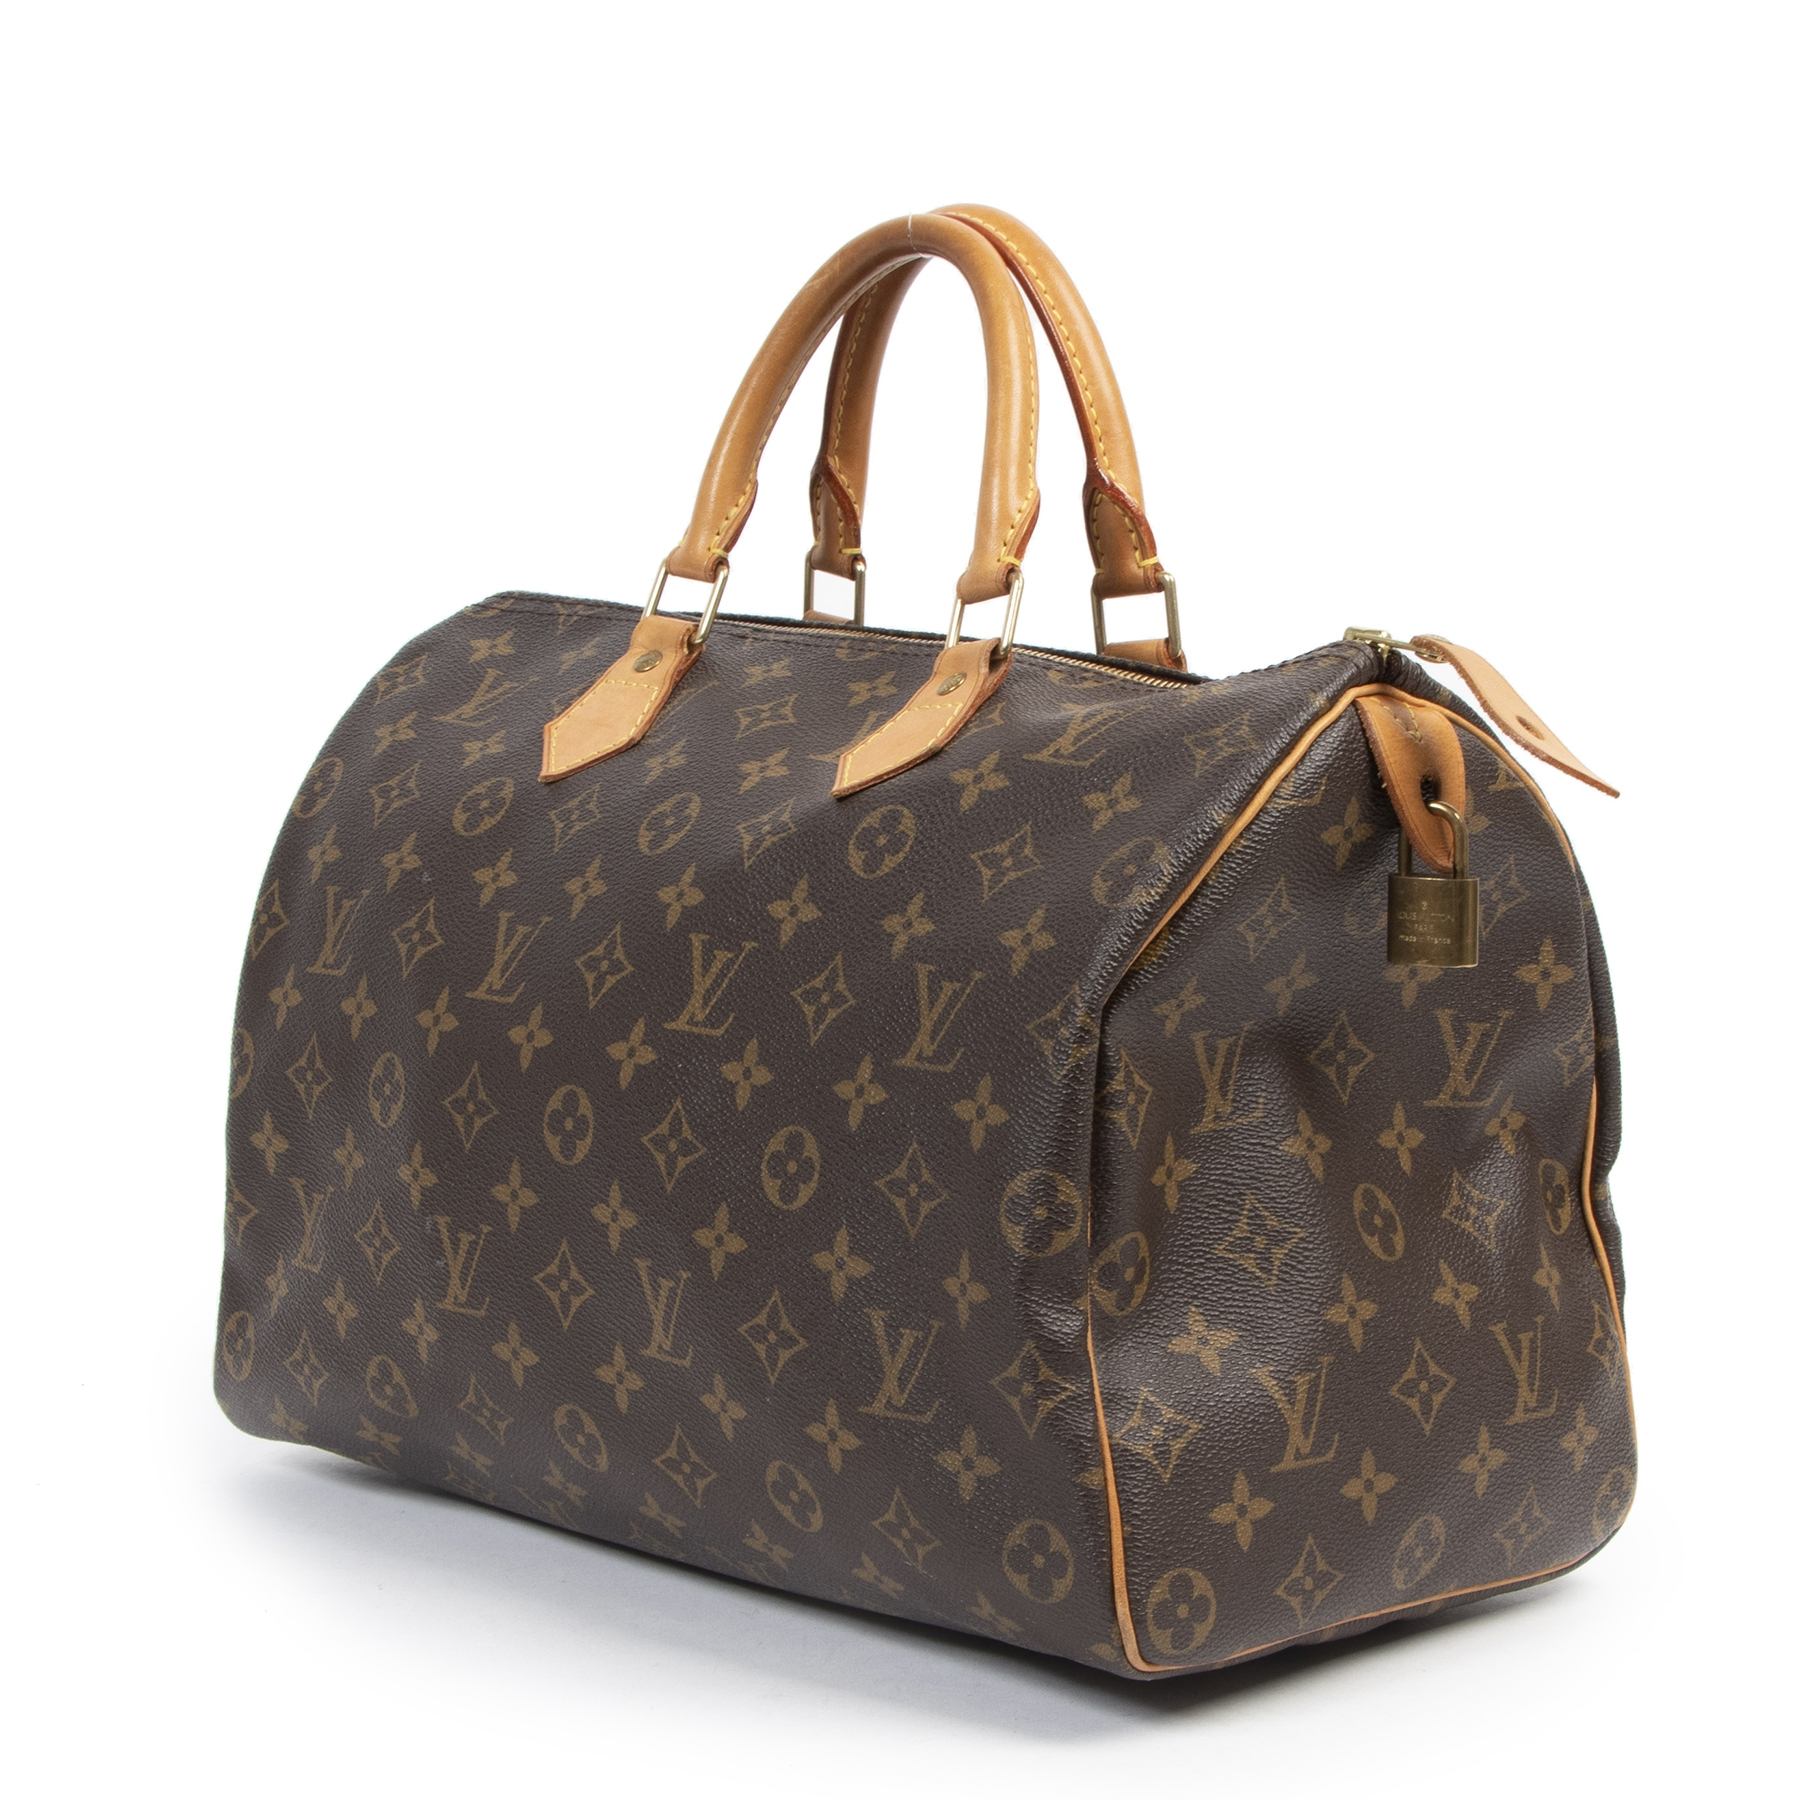 Louis Vuitton Speedy 35 Monogram Handbag